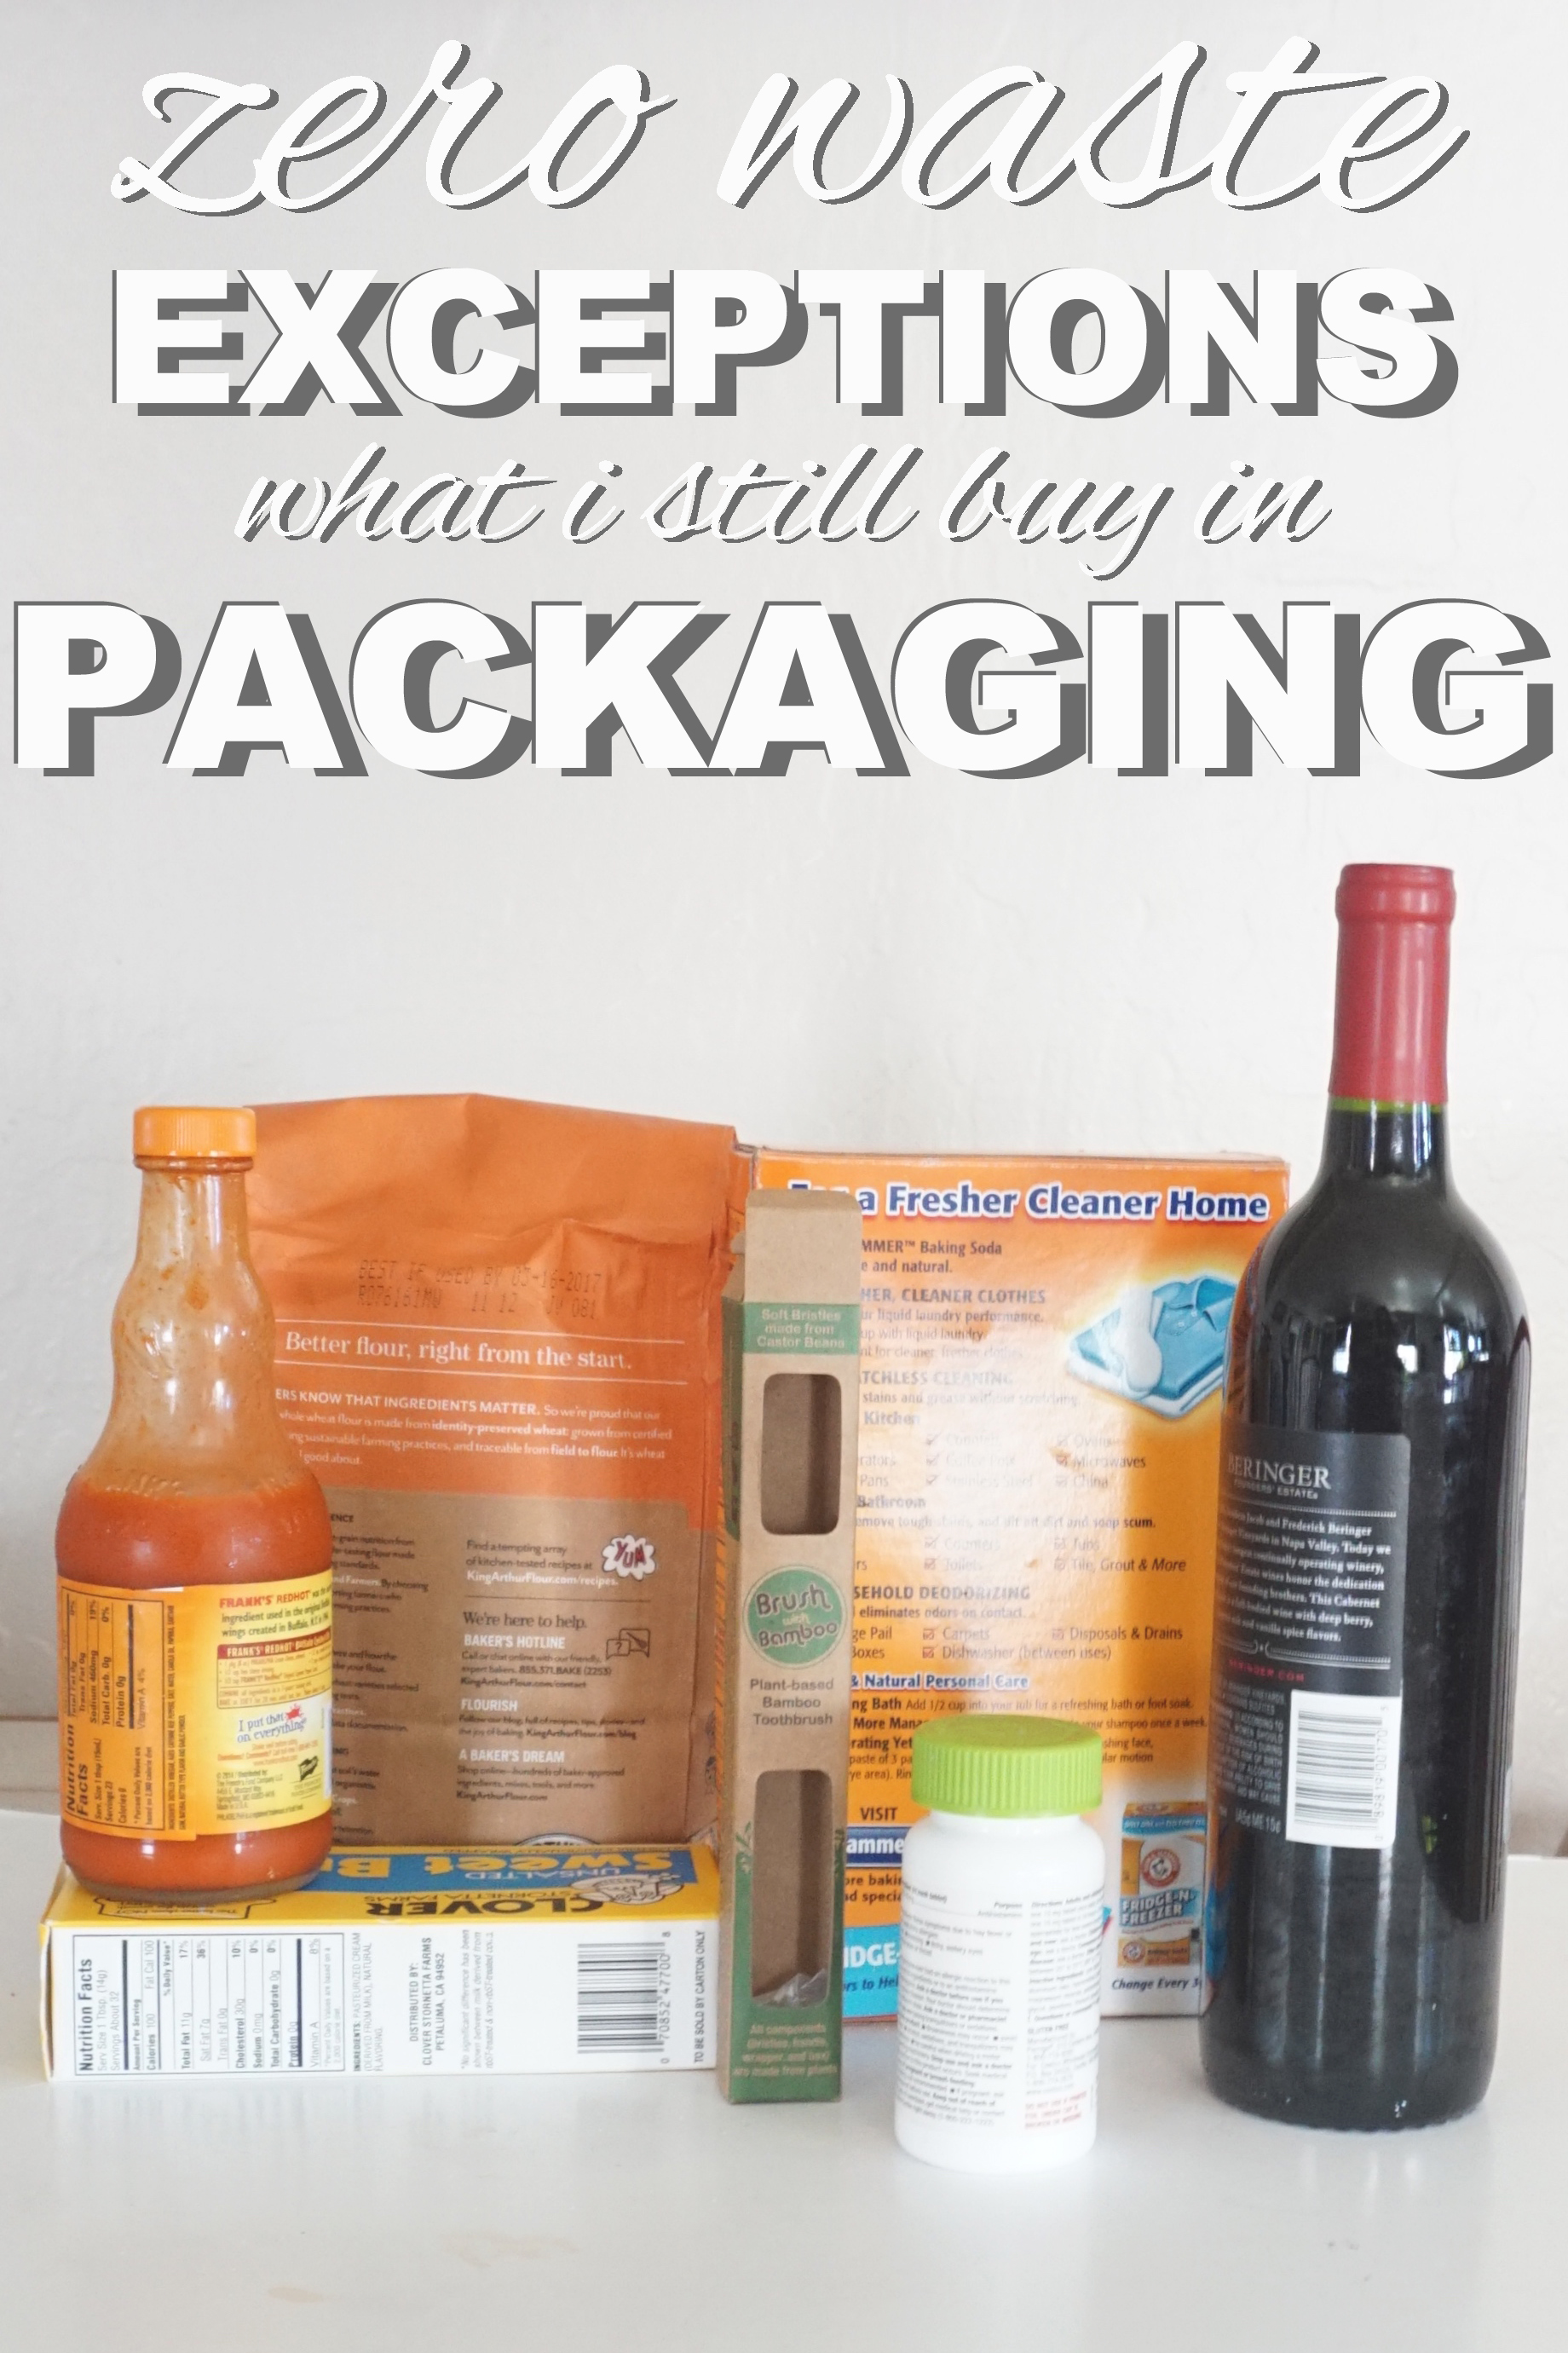 Zero waste exceptions. What does a zero waster still buy in packaging? www.goingzerowaste.com